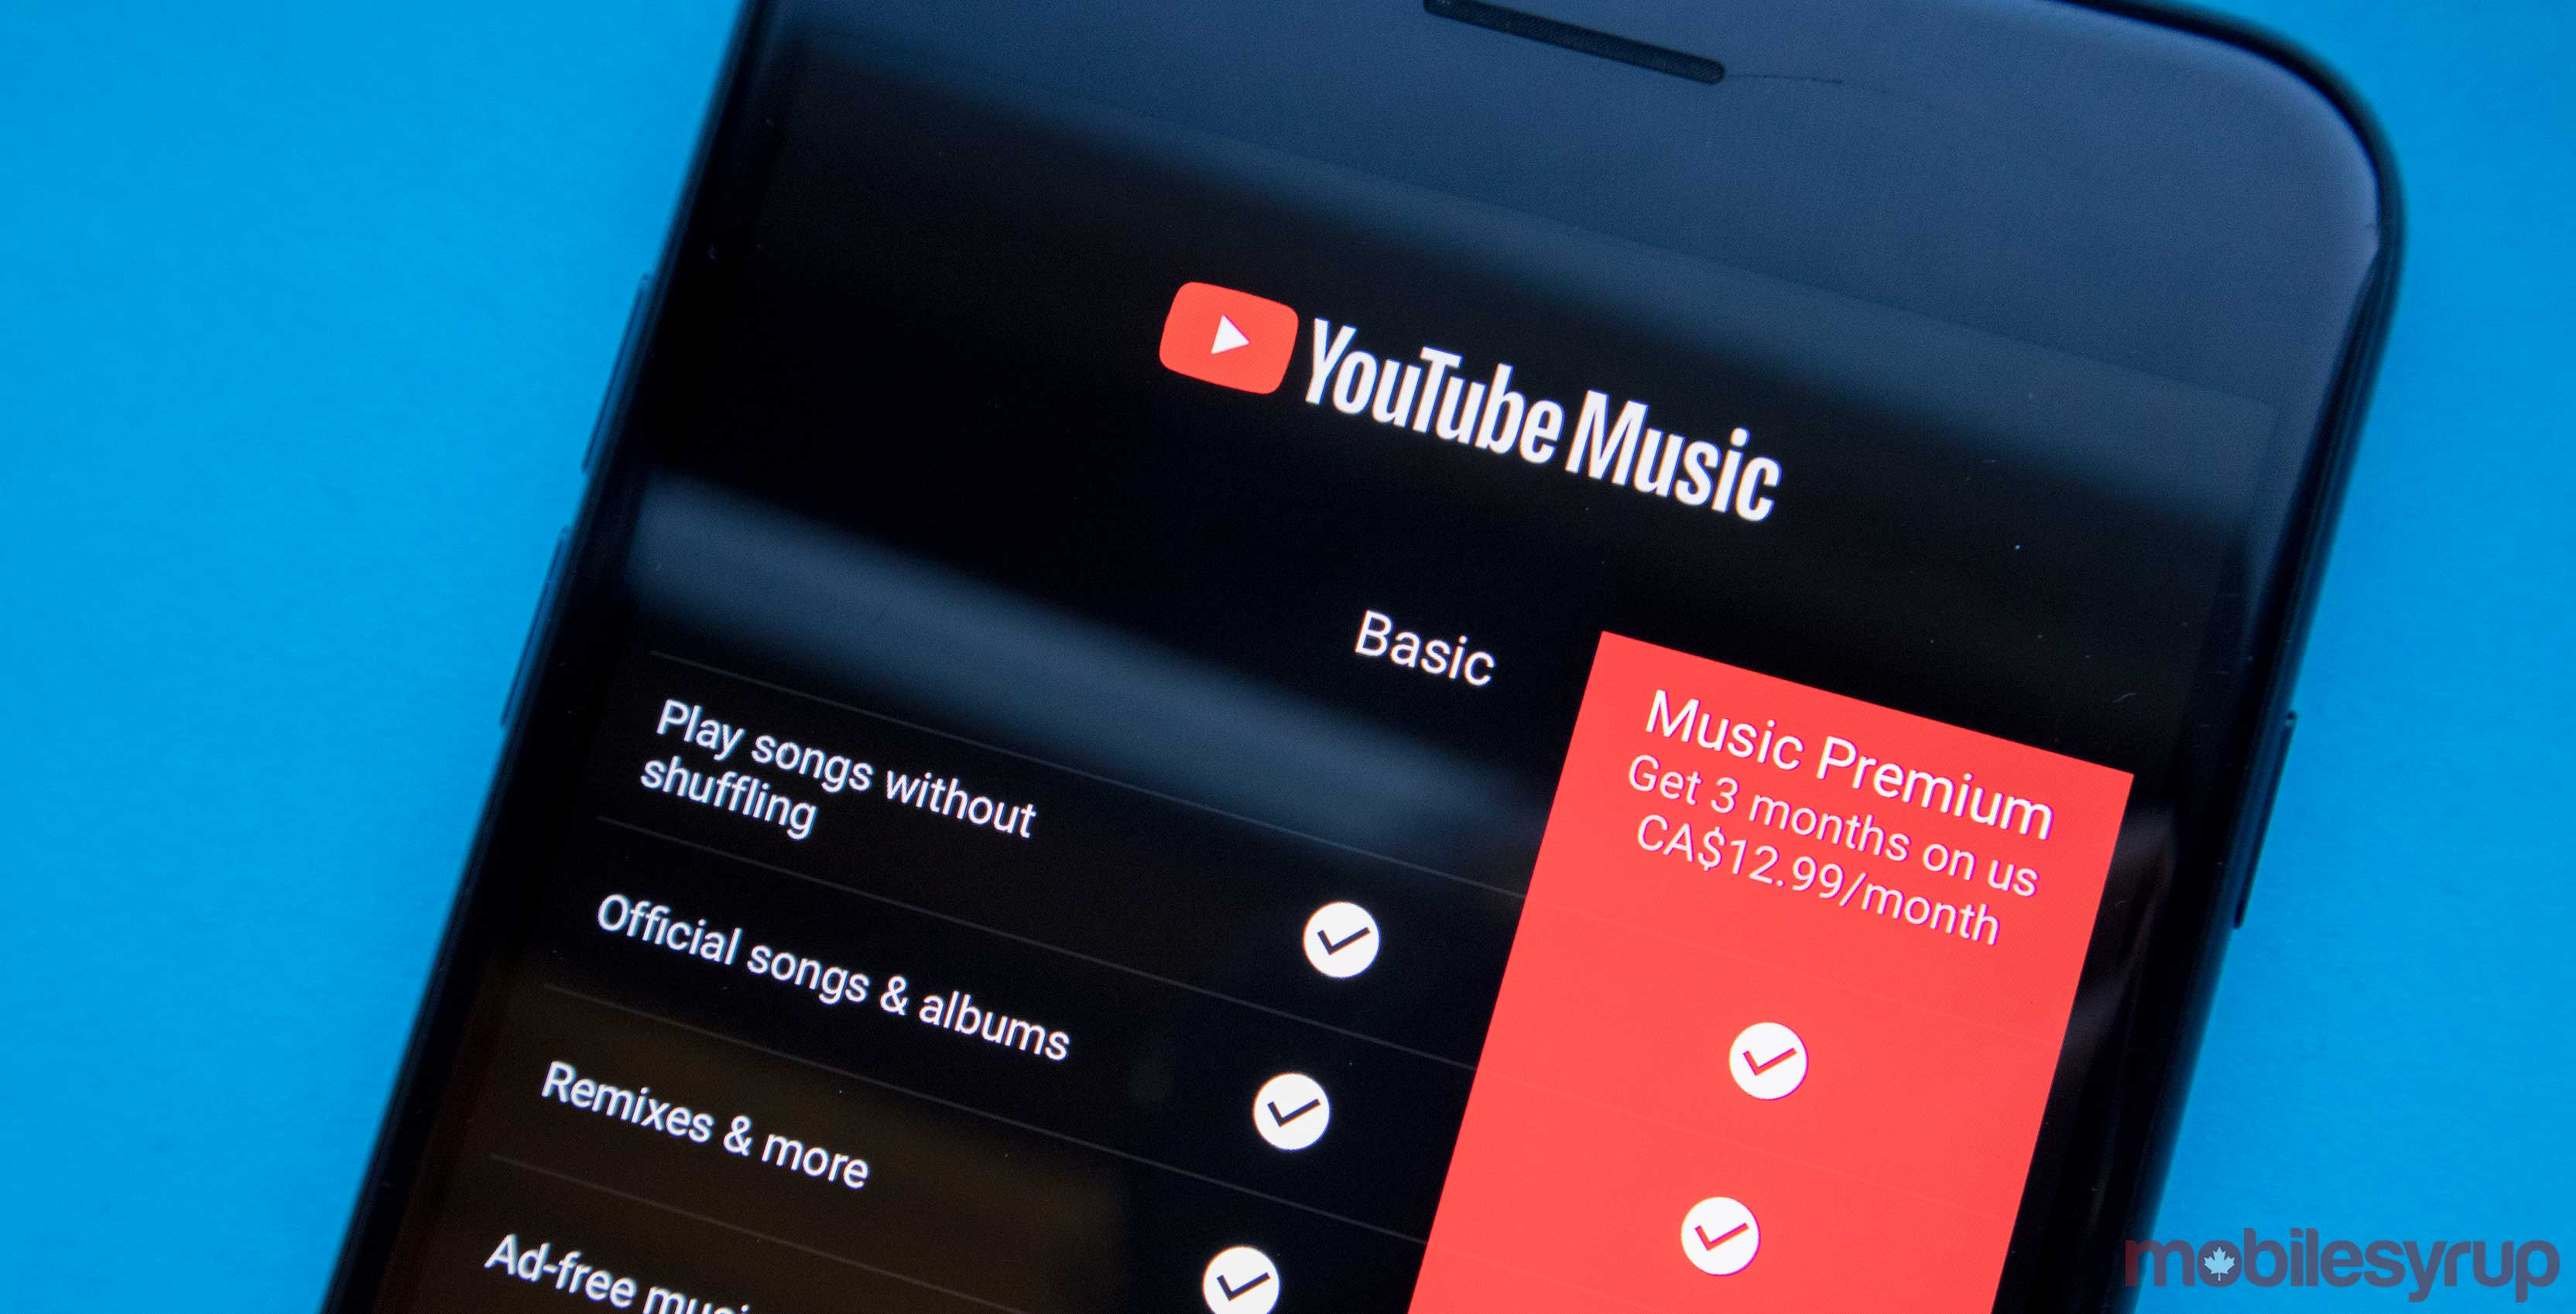 Get new youtube music